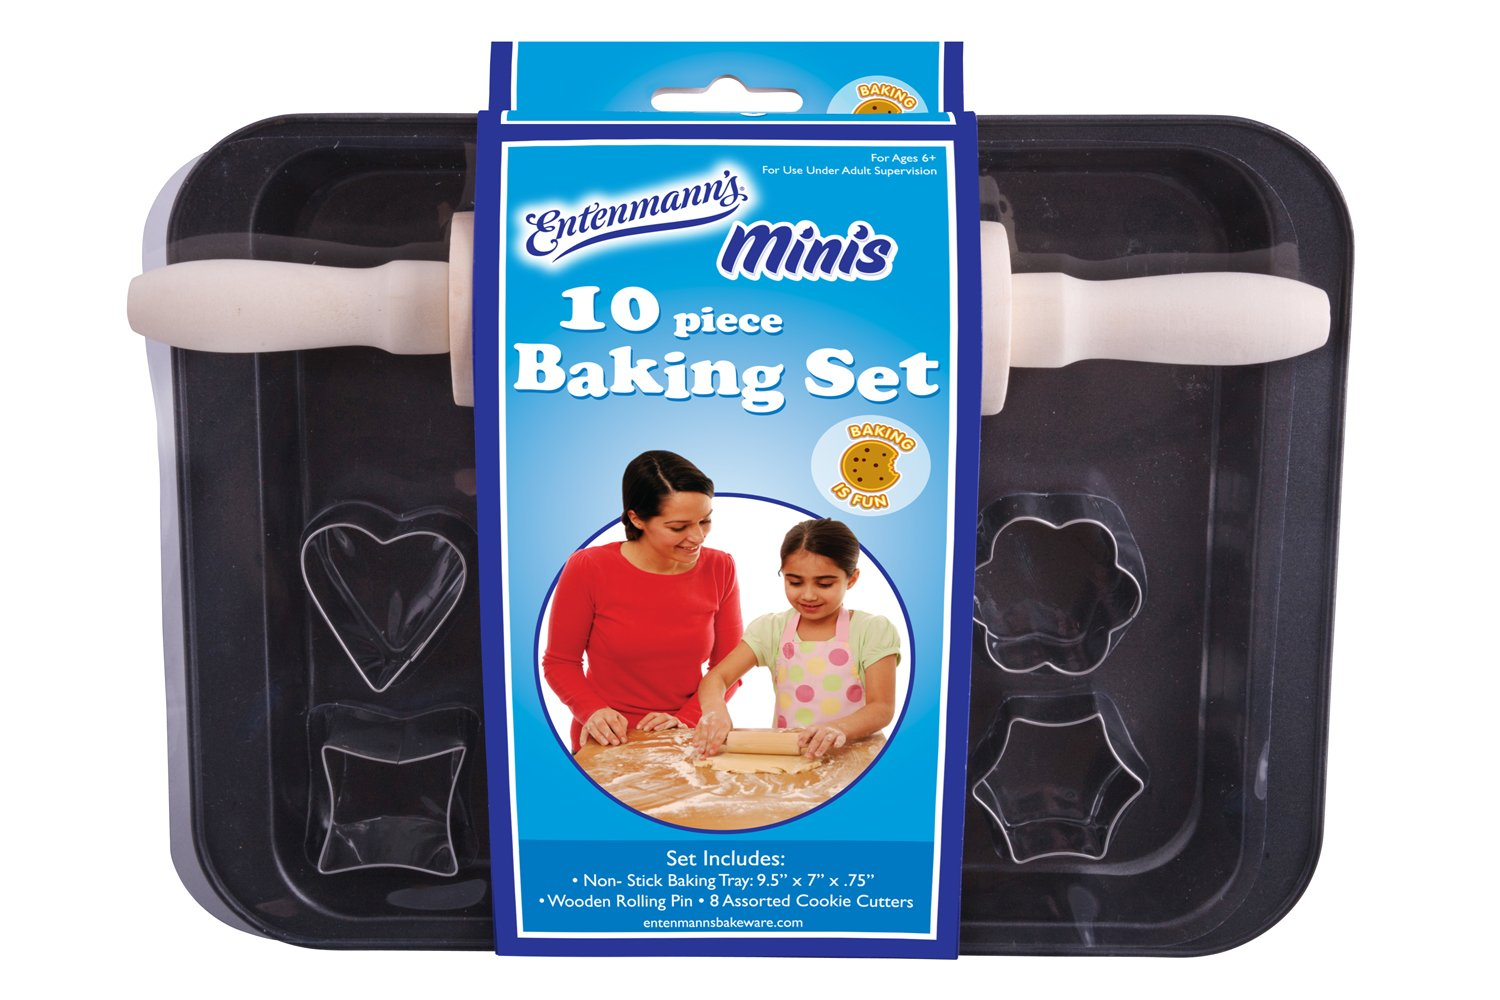 ENTENMANNS BAKEWARE Kids Bake Set, 10-Piece Entemanns Bakeware ENT39003